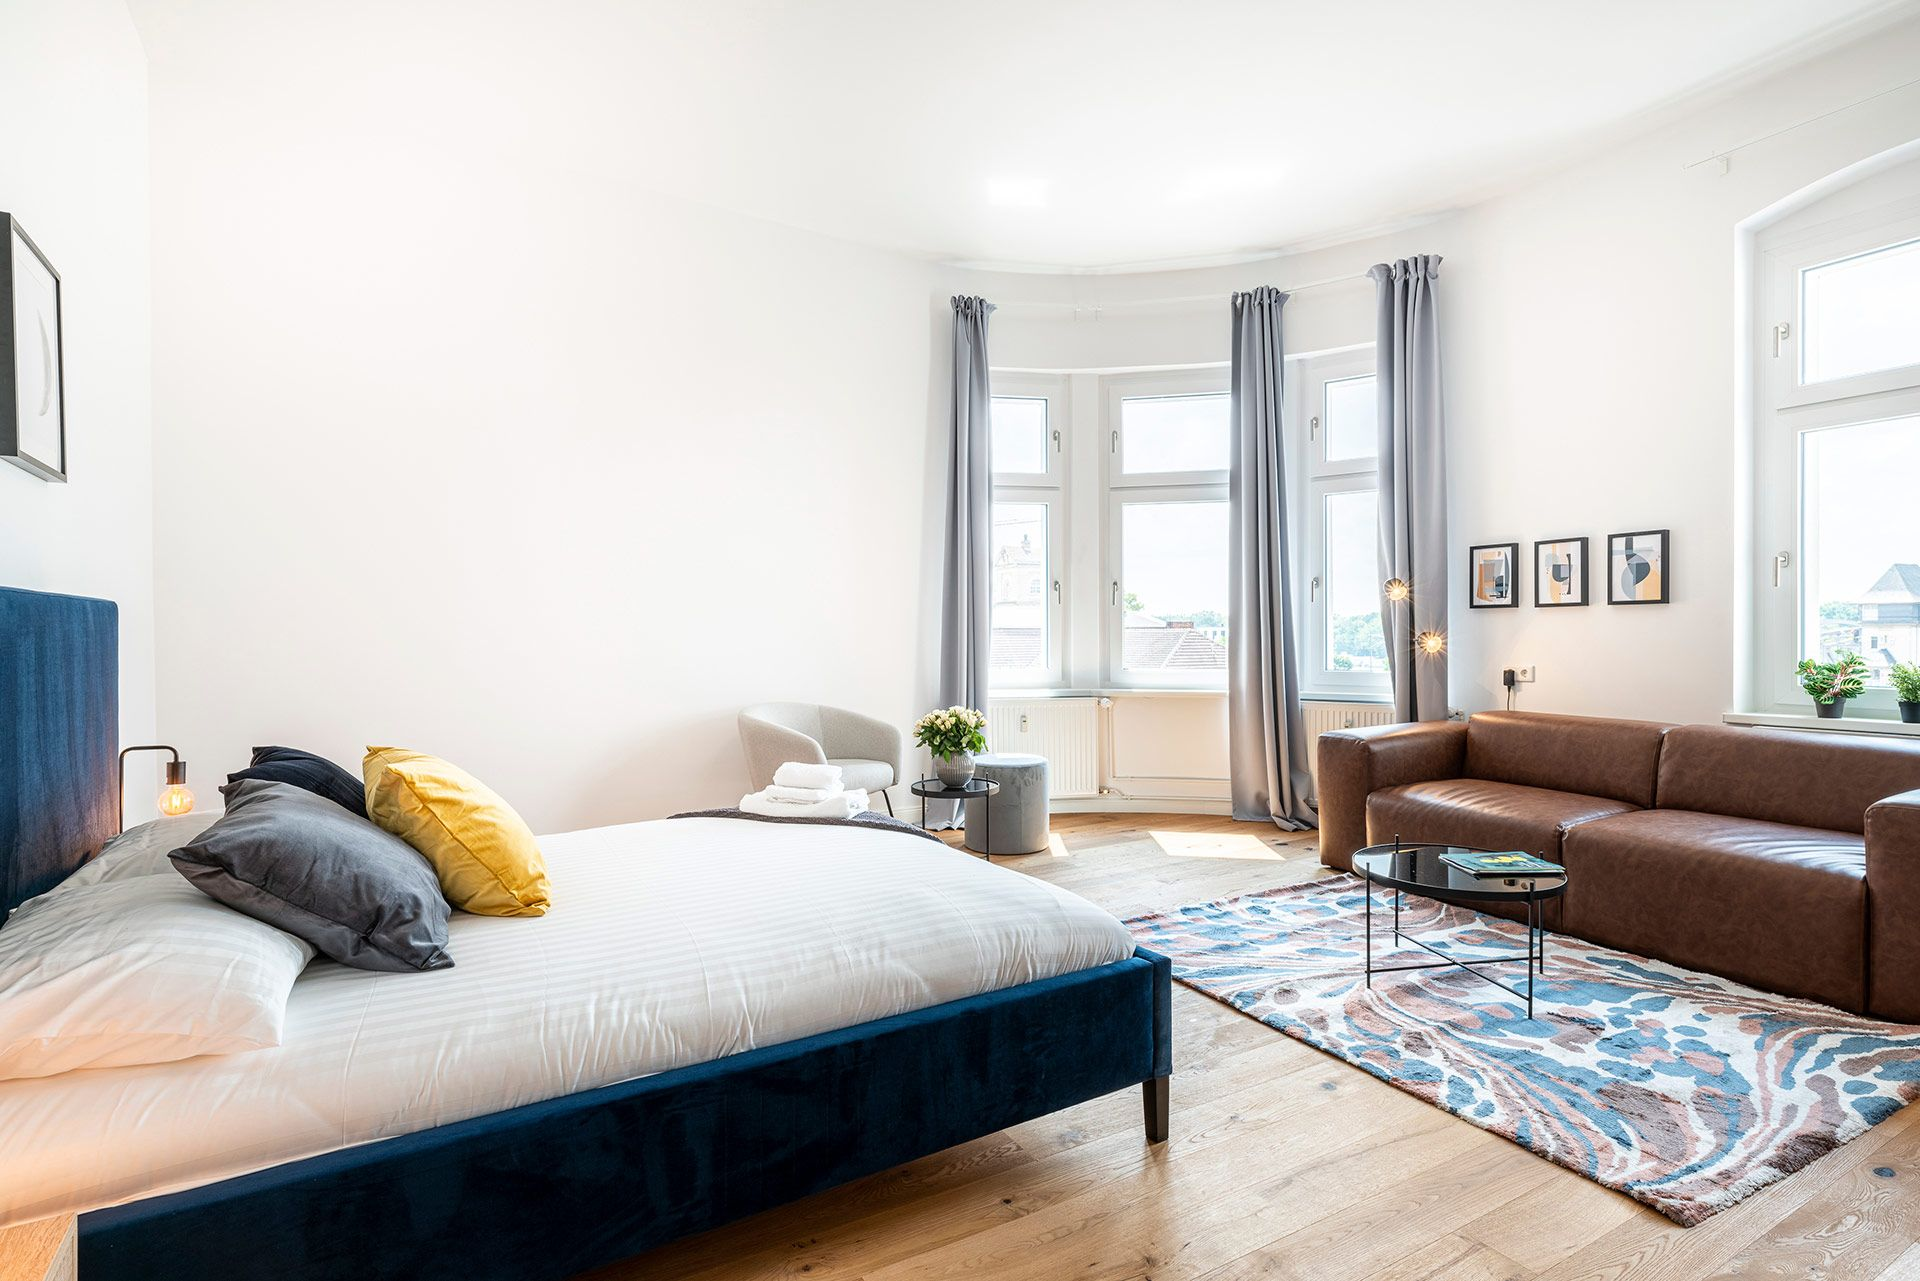 Private Room - Large apartment to rent in Berlin STRA-STRA-1114-1